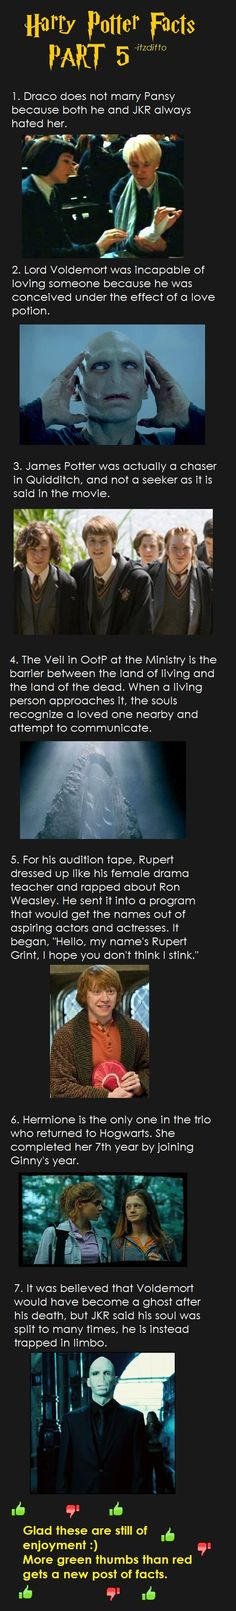 Harry Potter Facts Part 5 - Imgur 3 is false. James was a seeker. Remember the flashback where he was carrying the snitch around and catching it to be a show off?